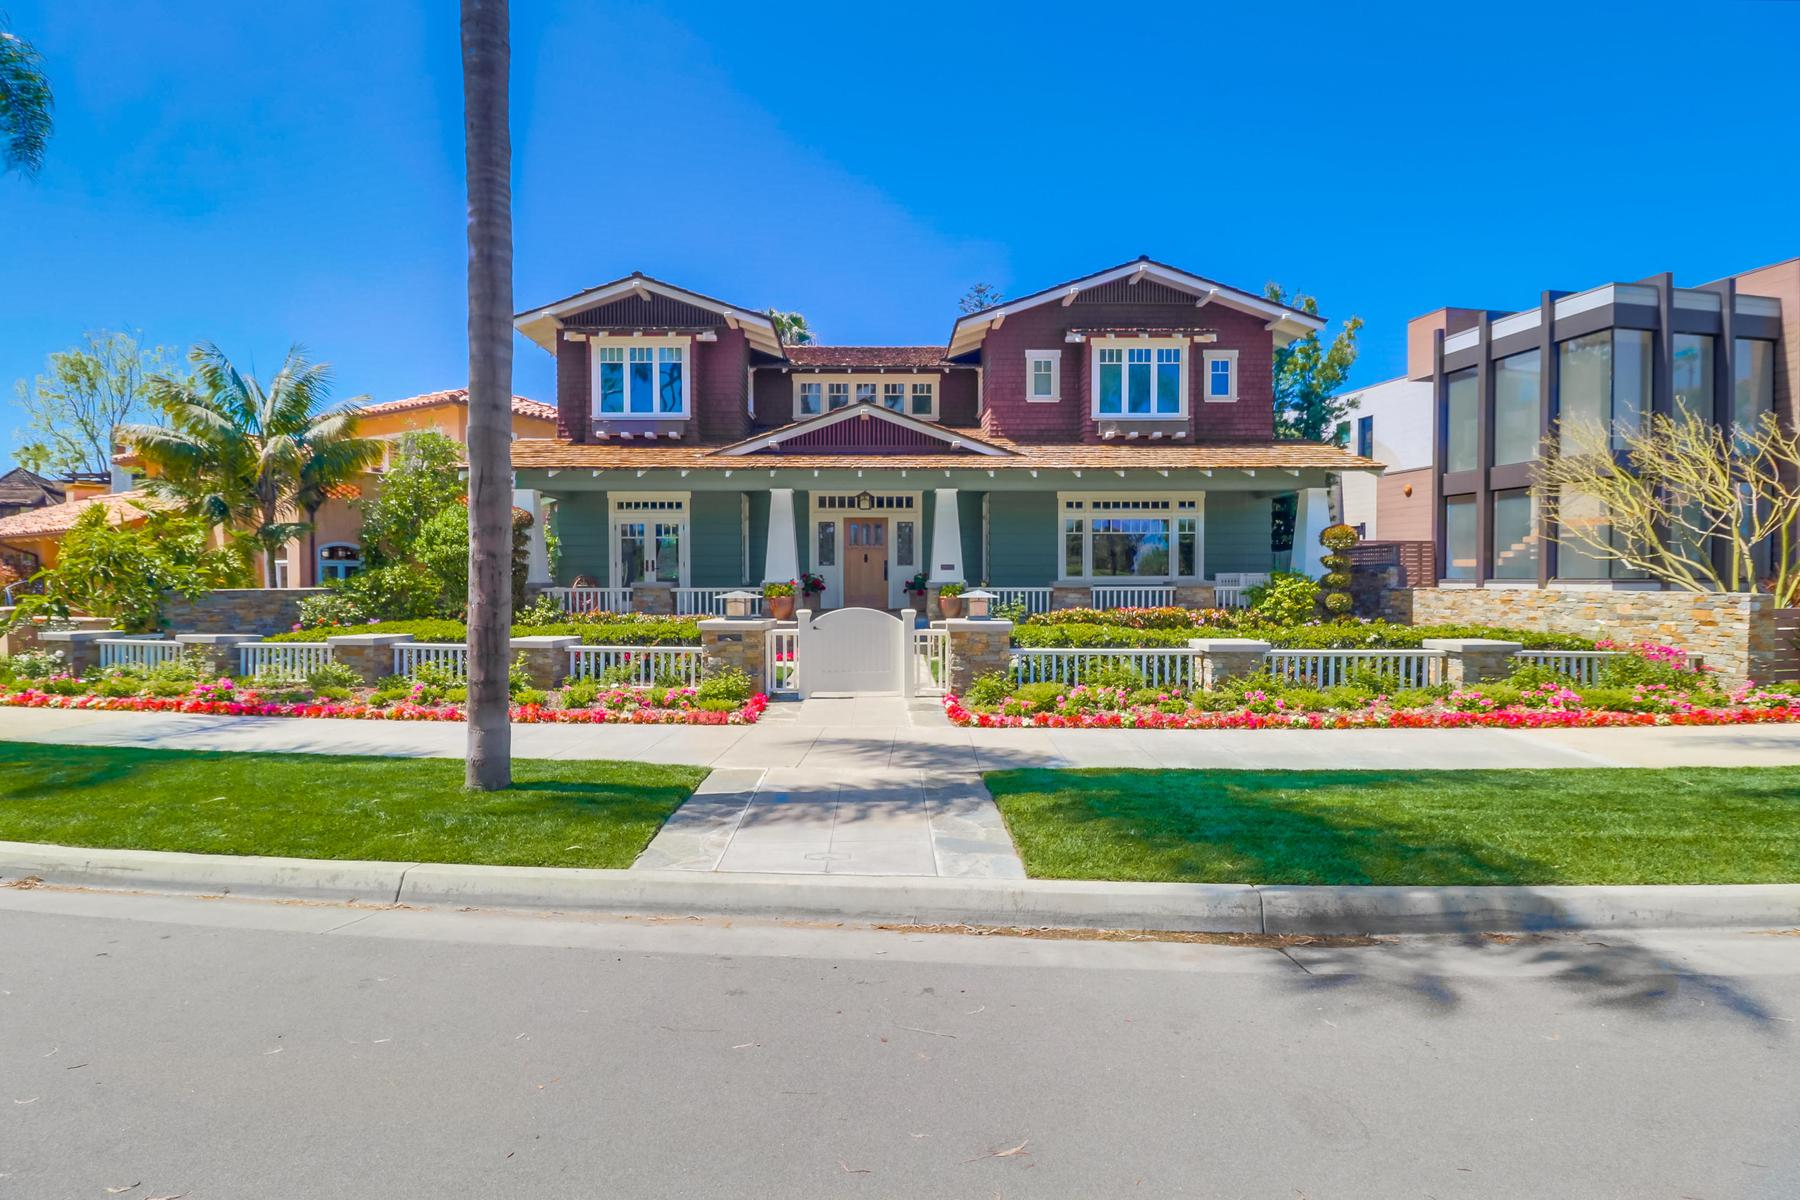 Single Family Homes for Active at 922 Glorietta Blvd Coronado, California 92118 United States